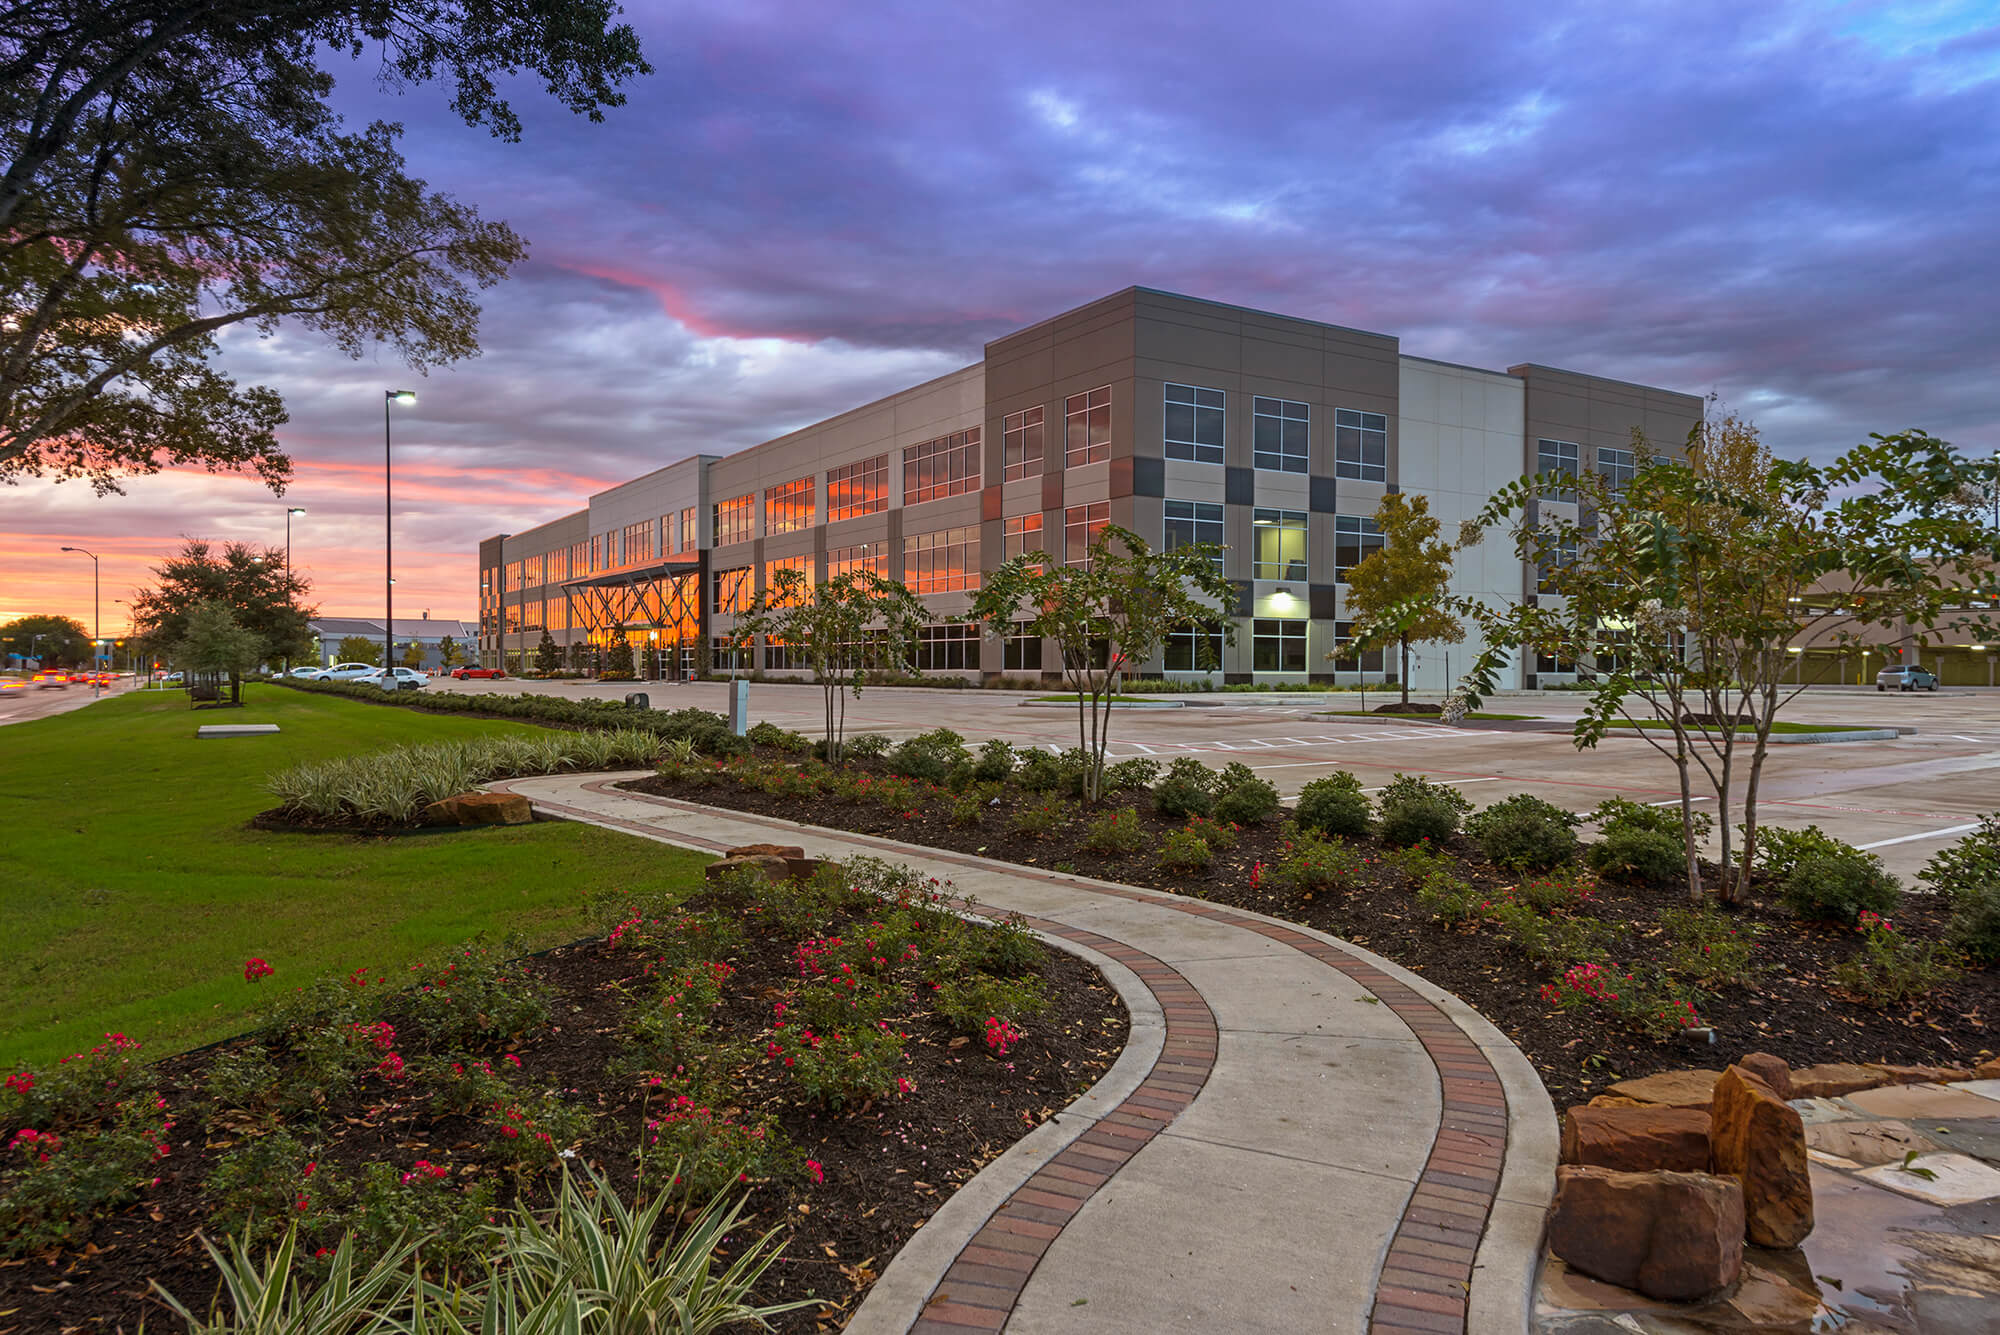 Commercial Architecture at Dusk